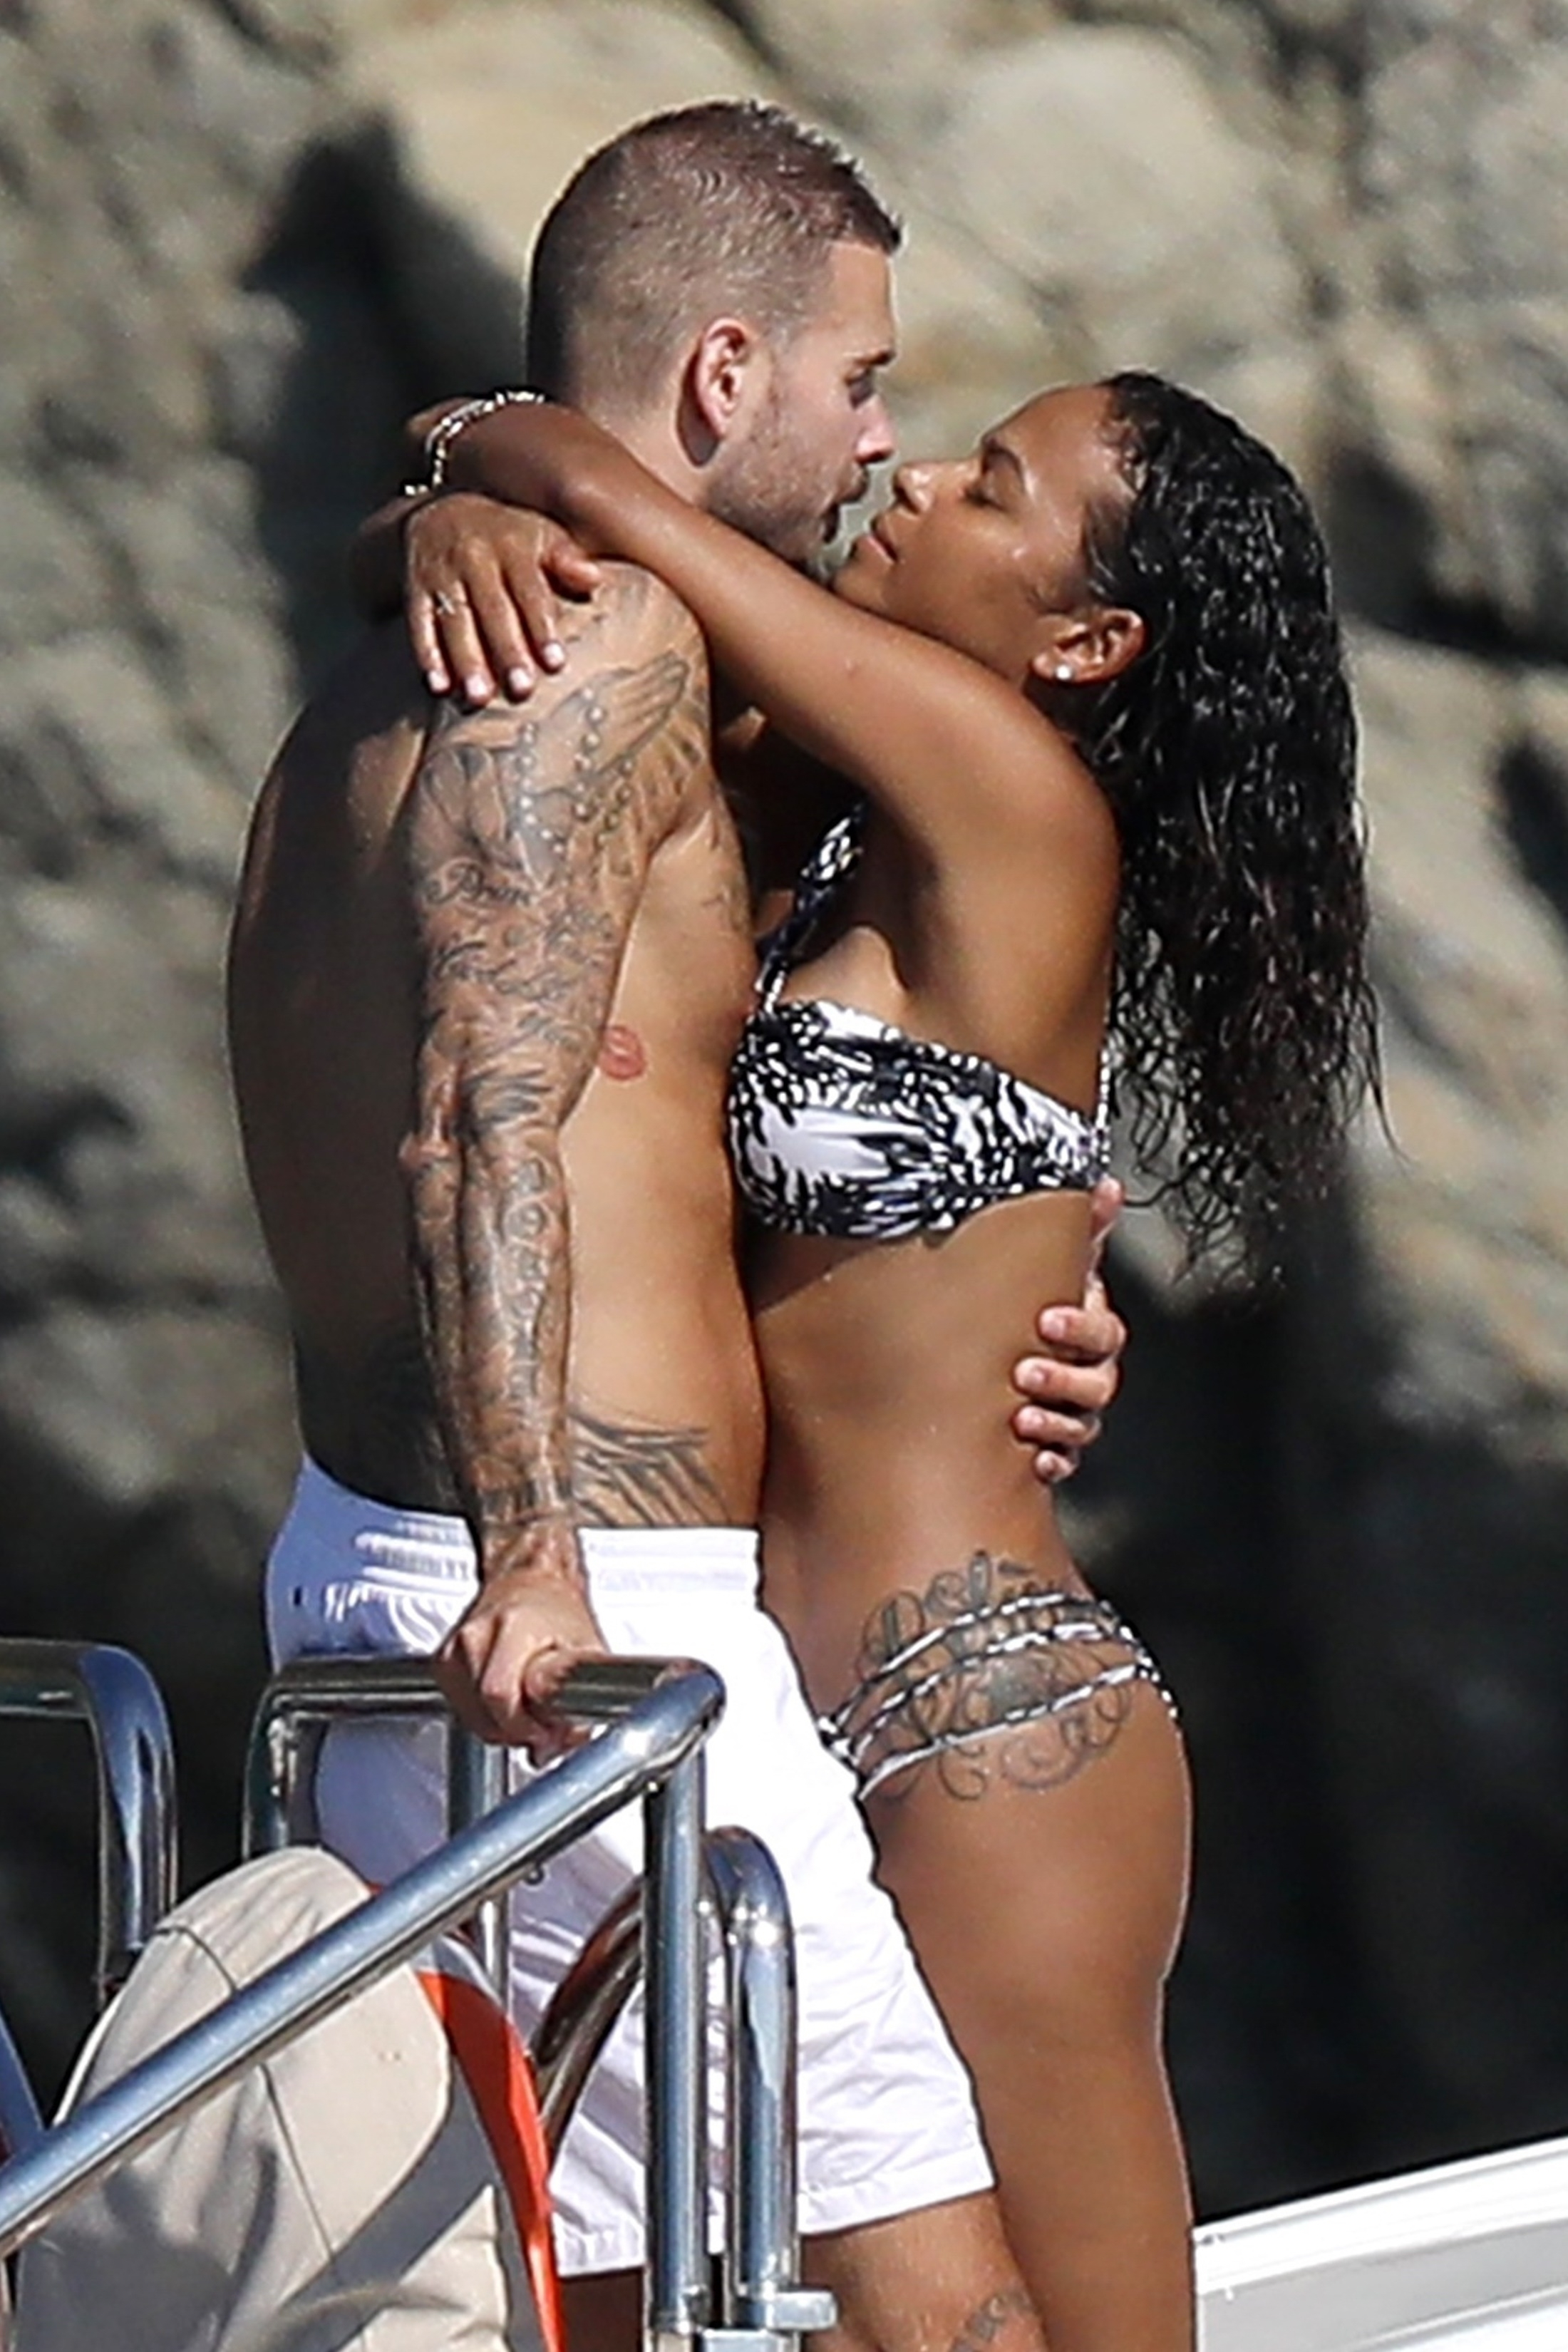 Matt Pokora and Christina Milian kept it sizzling while lounging on a yacht in St. Tropez, France on Aug. 30, 2018.